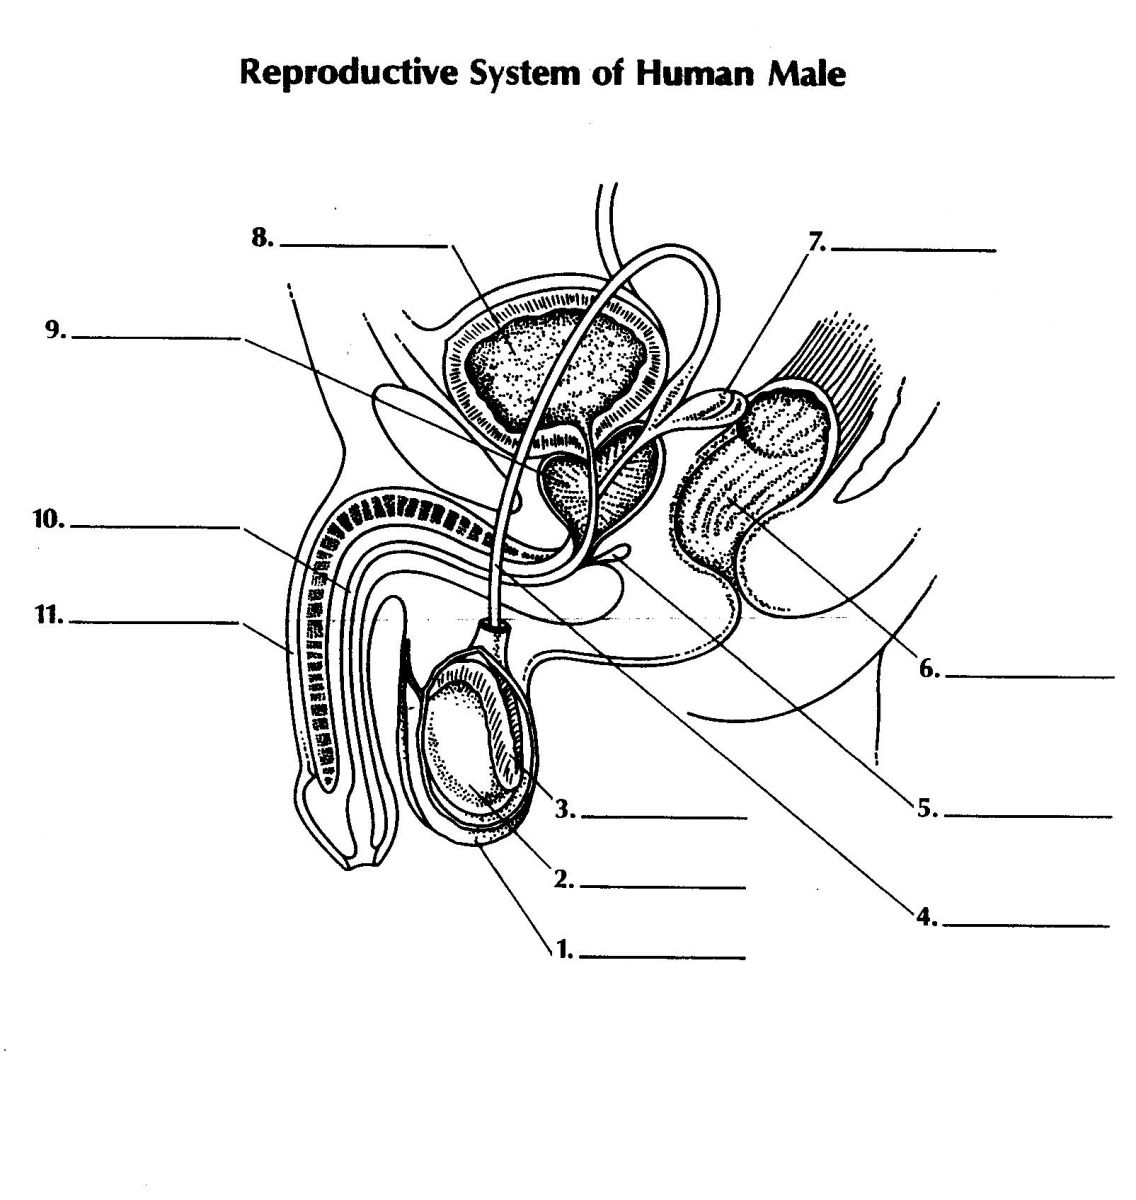 Reproductive System Of The Human Male - Proprofs Quiz-3728